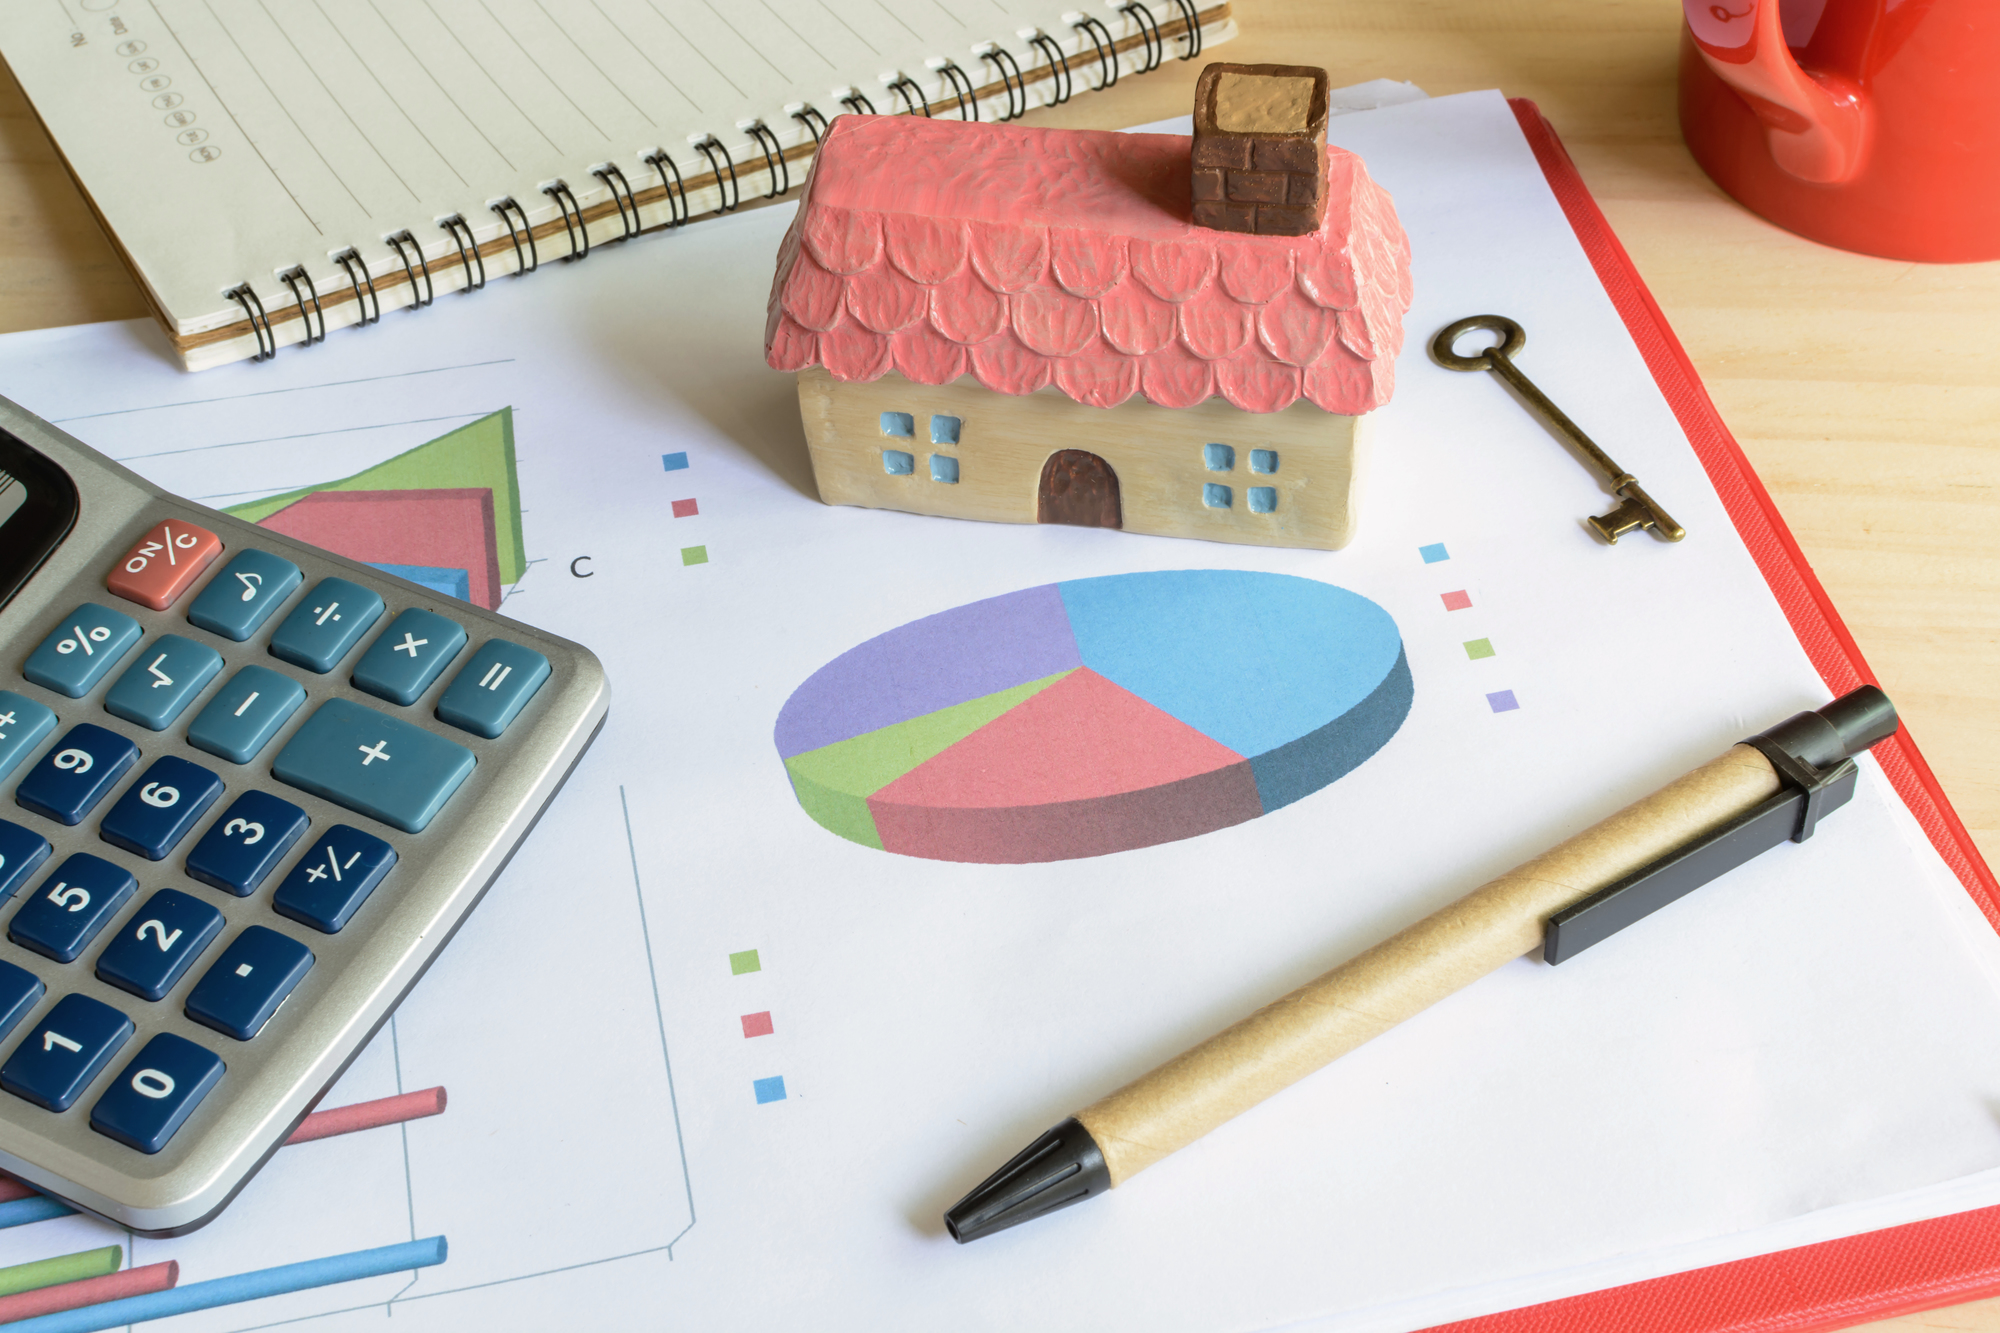 Home finance concept, residential house, expenses calculated